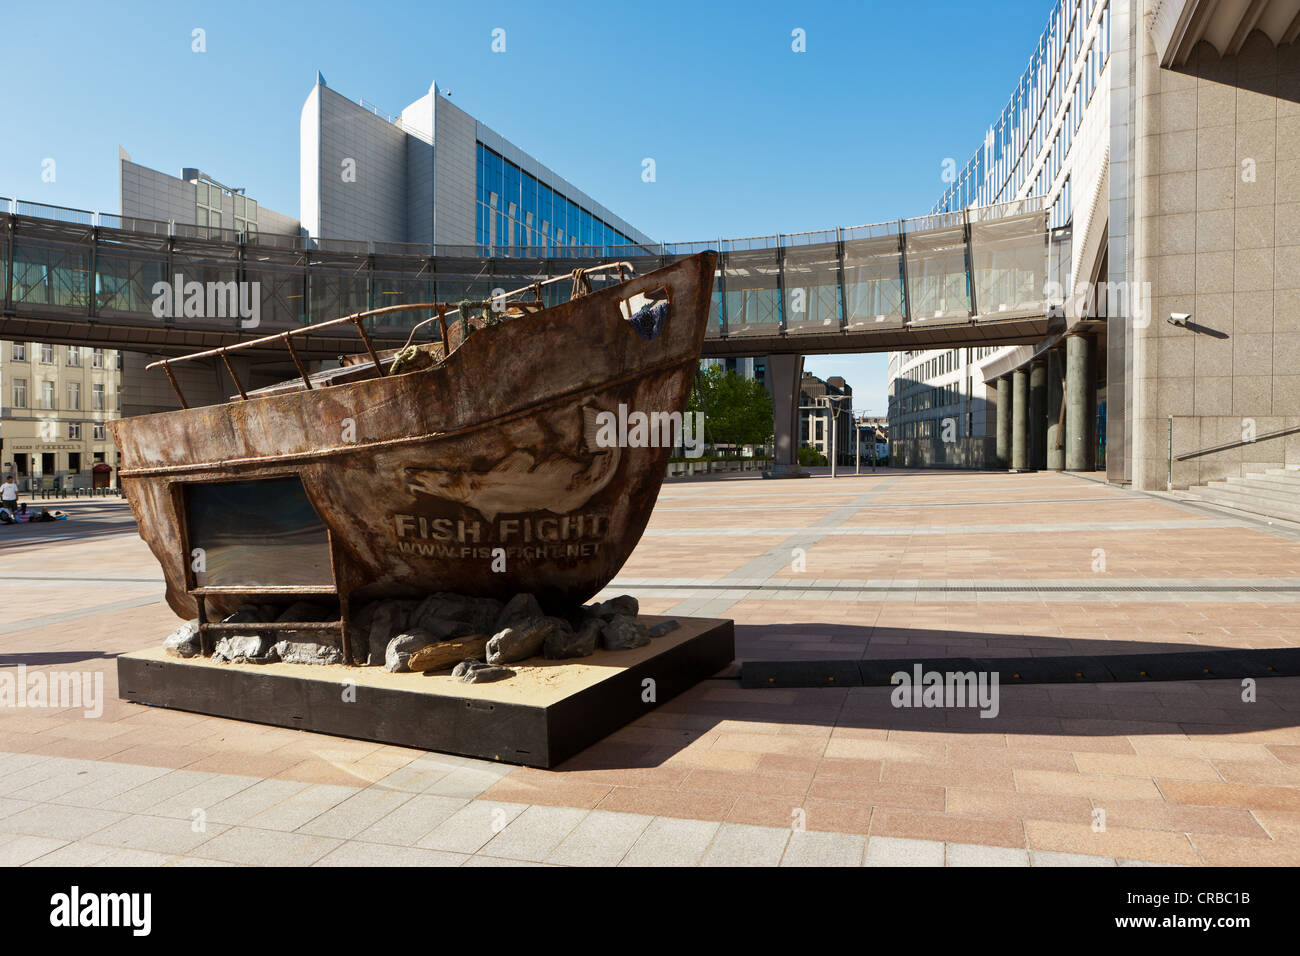 Fishing boat as a sculpture, 'Fish Fight' campaign against overfishing in the North Sea, European Parliament, - Stock Image